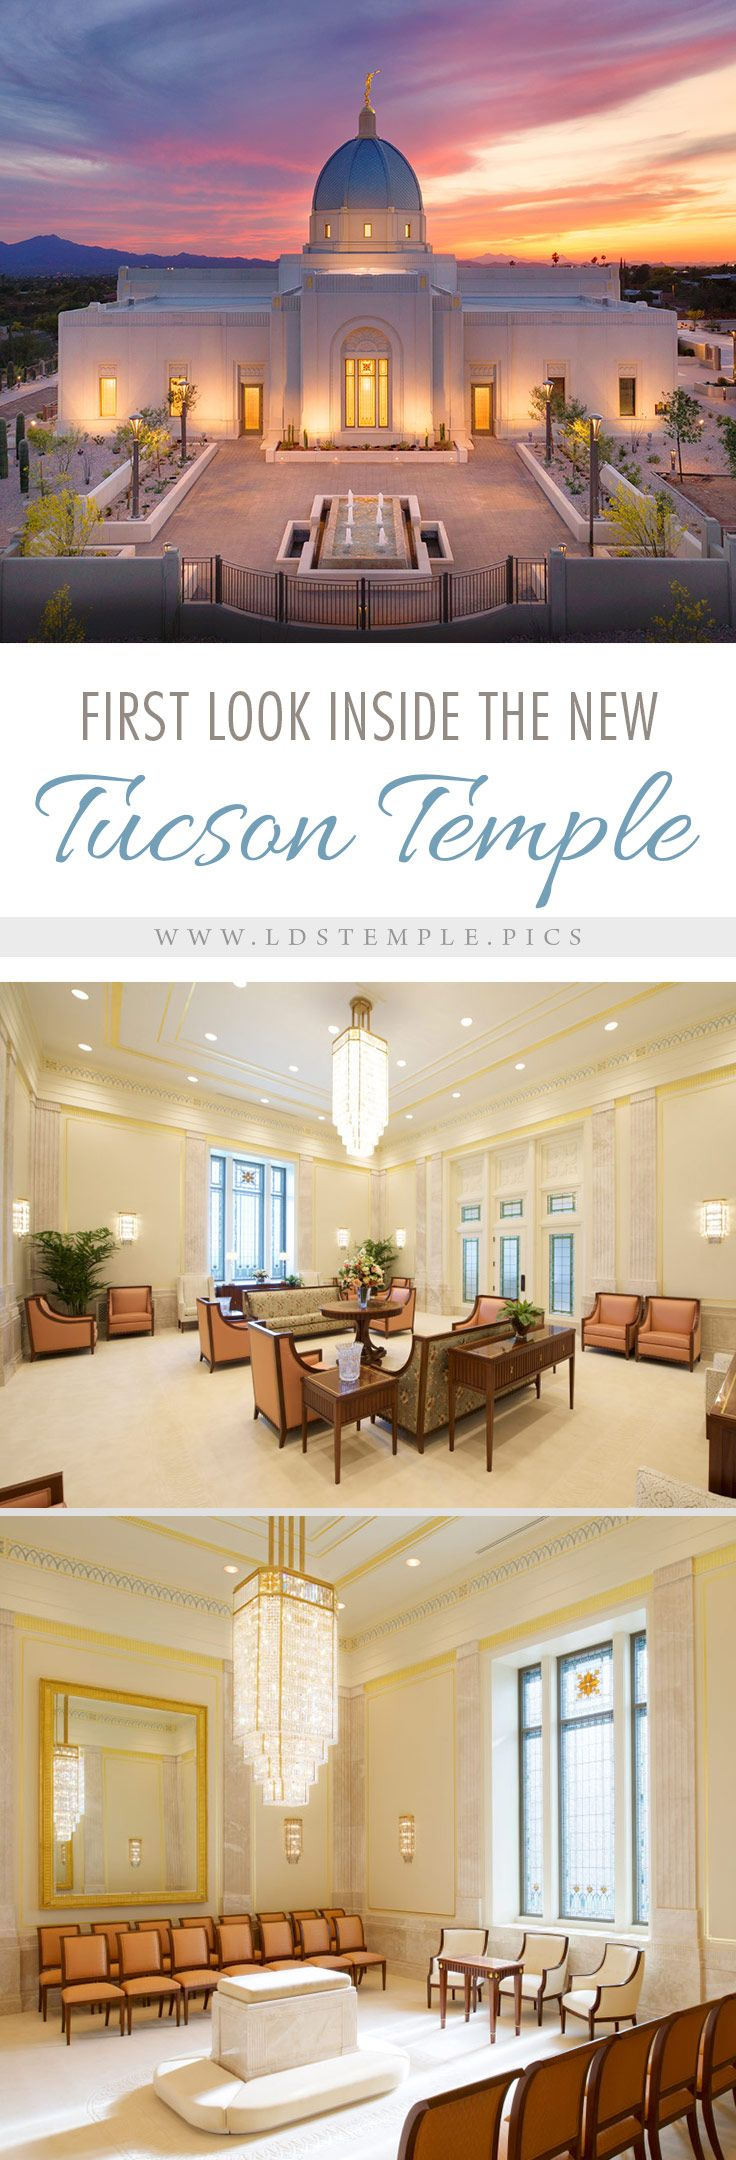 The First Look Inside the New Tucson Arizona Temple